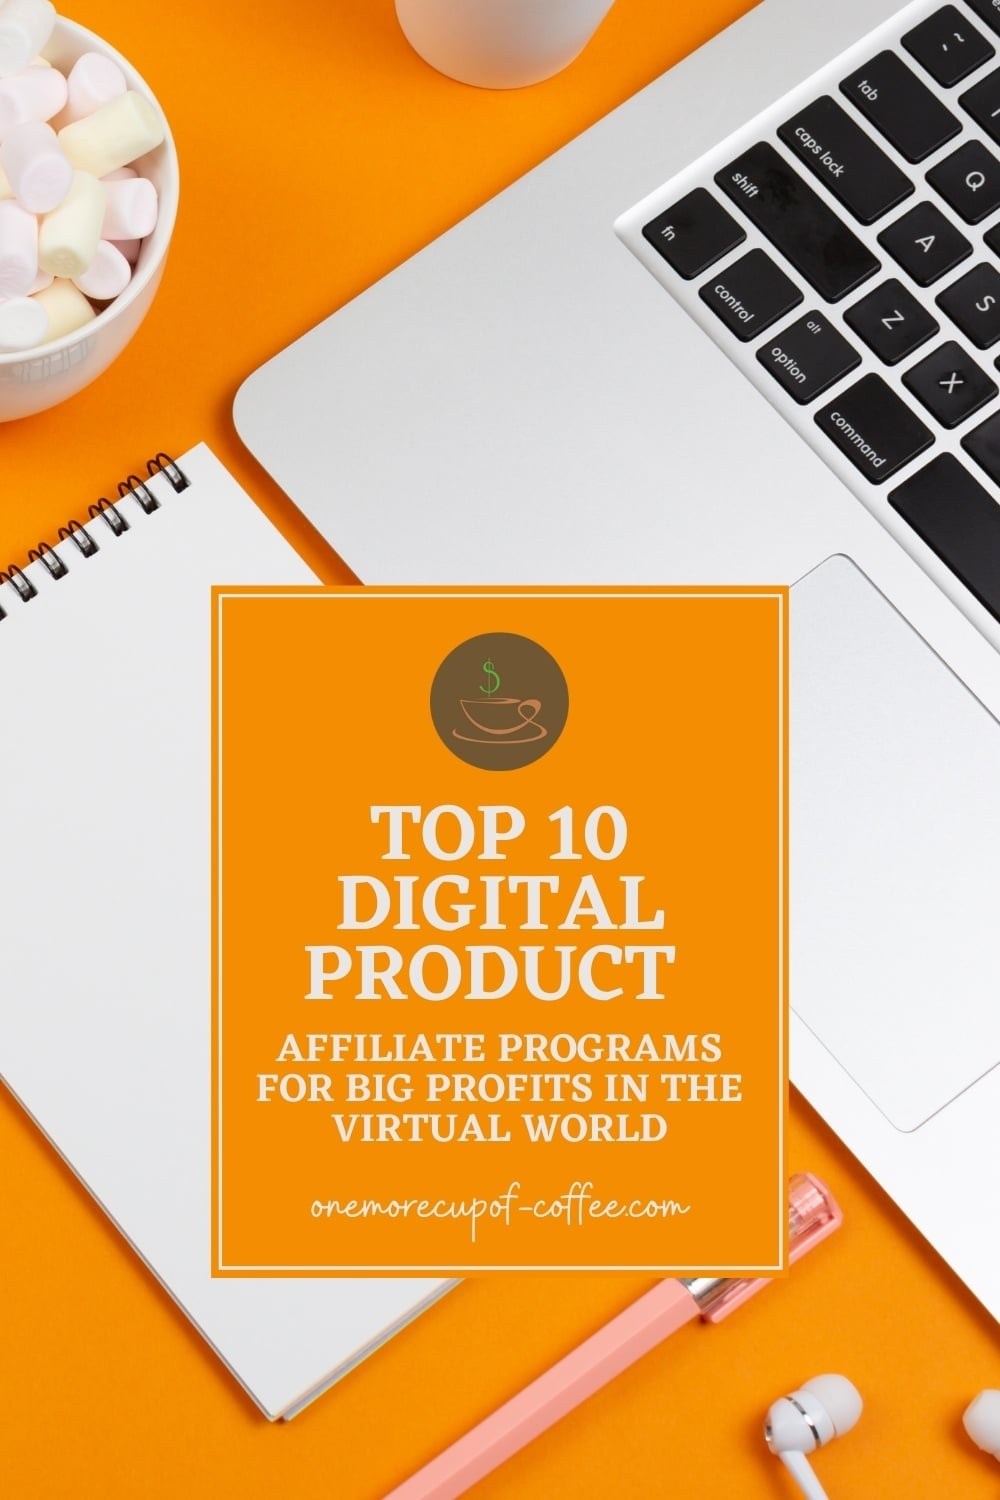 Top 10 Digital Product Affiliate Programs For Big Profits In The Virtual World